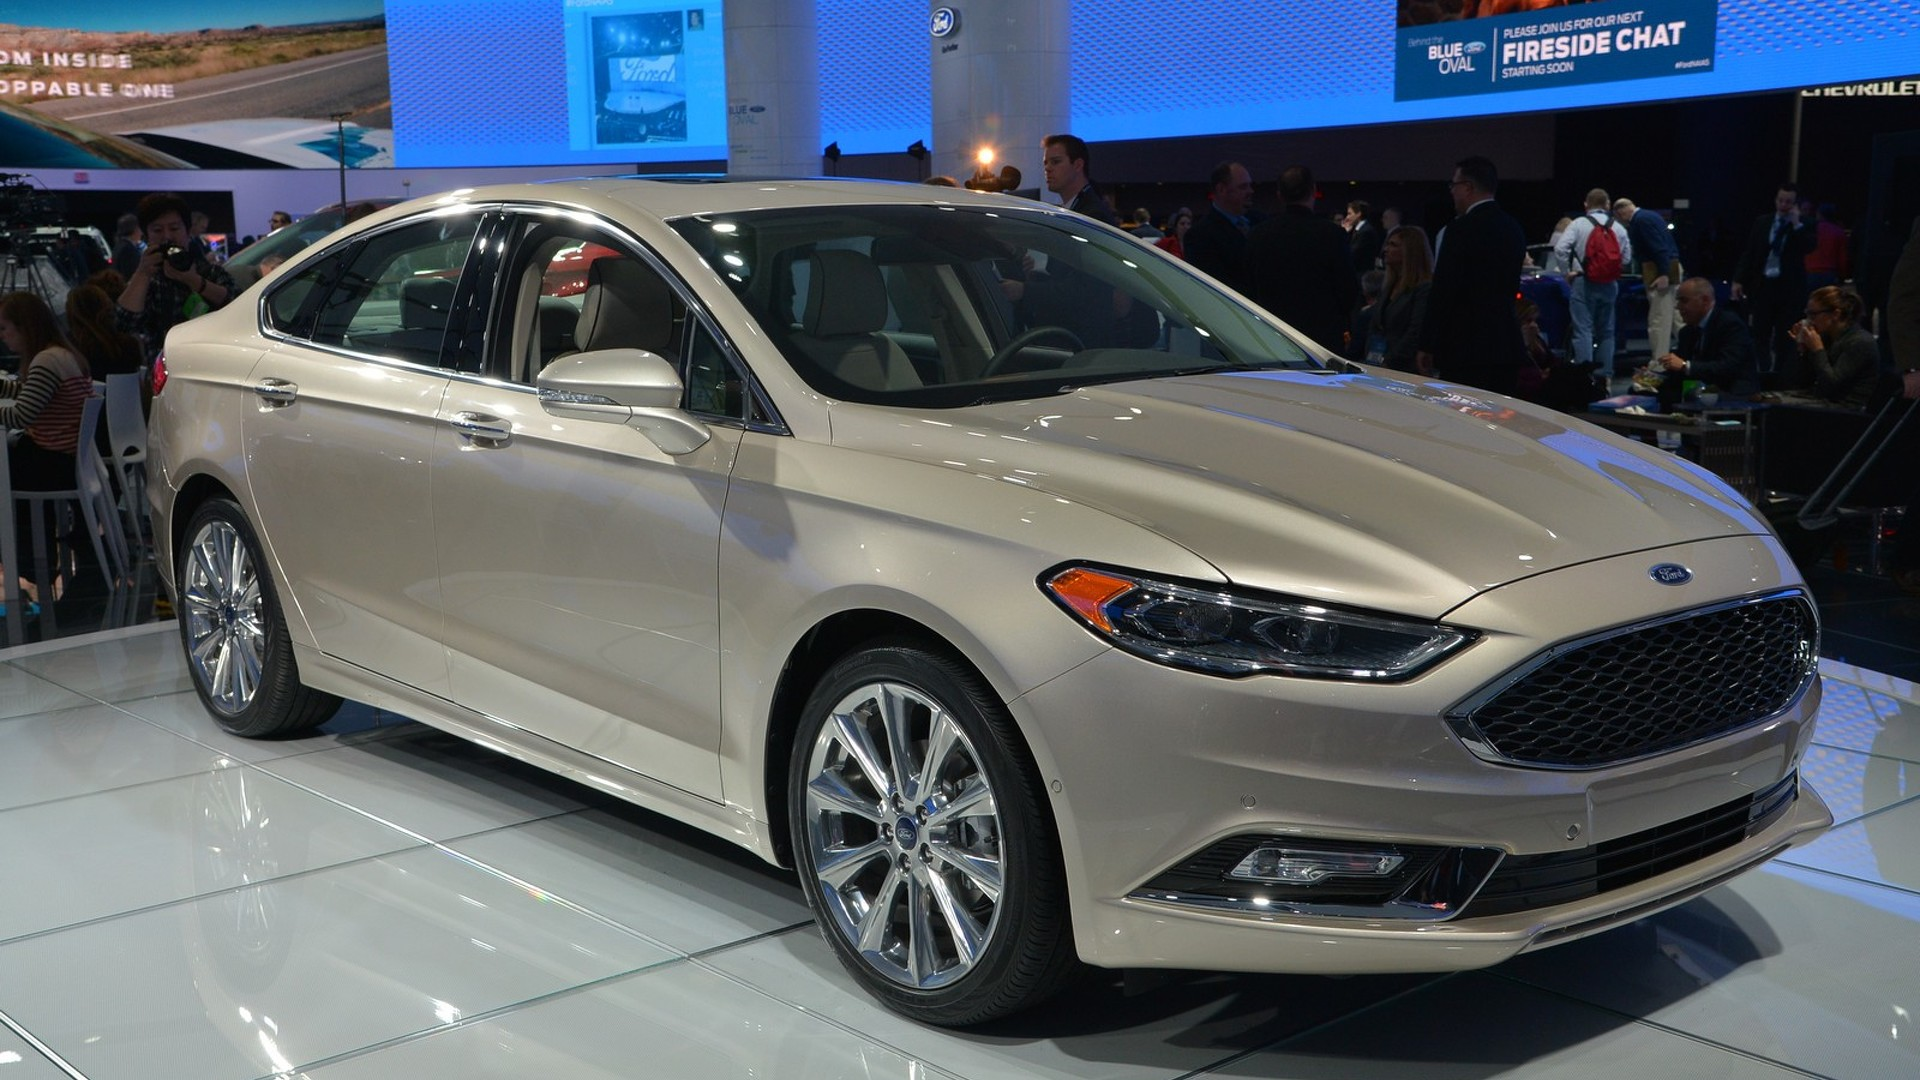 2017 ford fusion v6 sport breaks cover with 325 hp and awd live pics. Black Bedroom Furniture Sets. Home Design Ideas